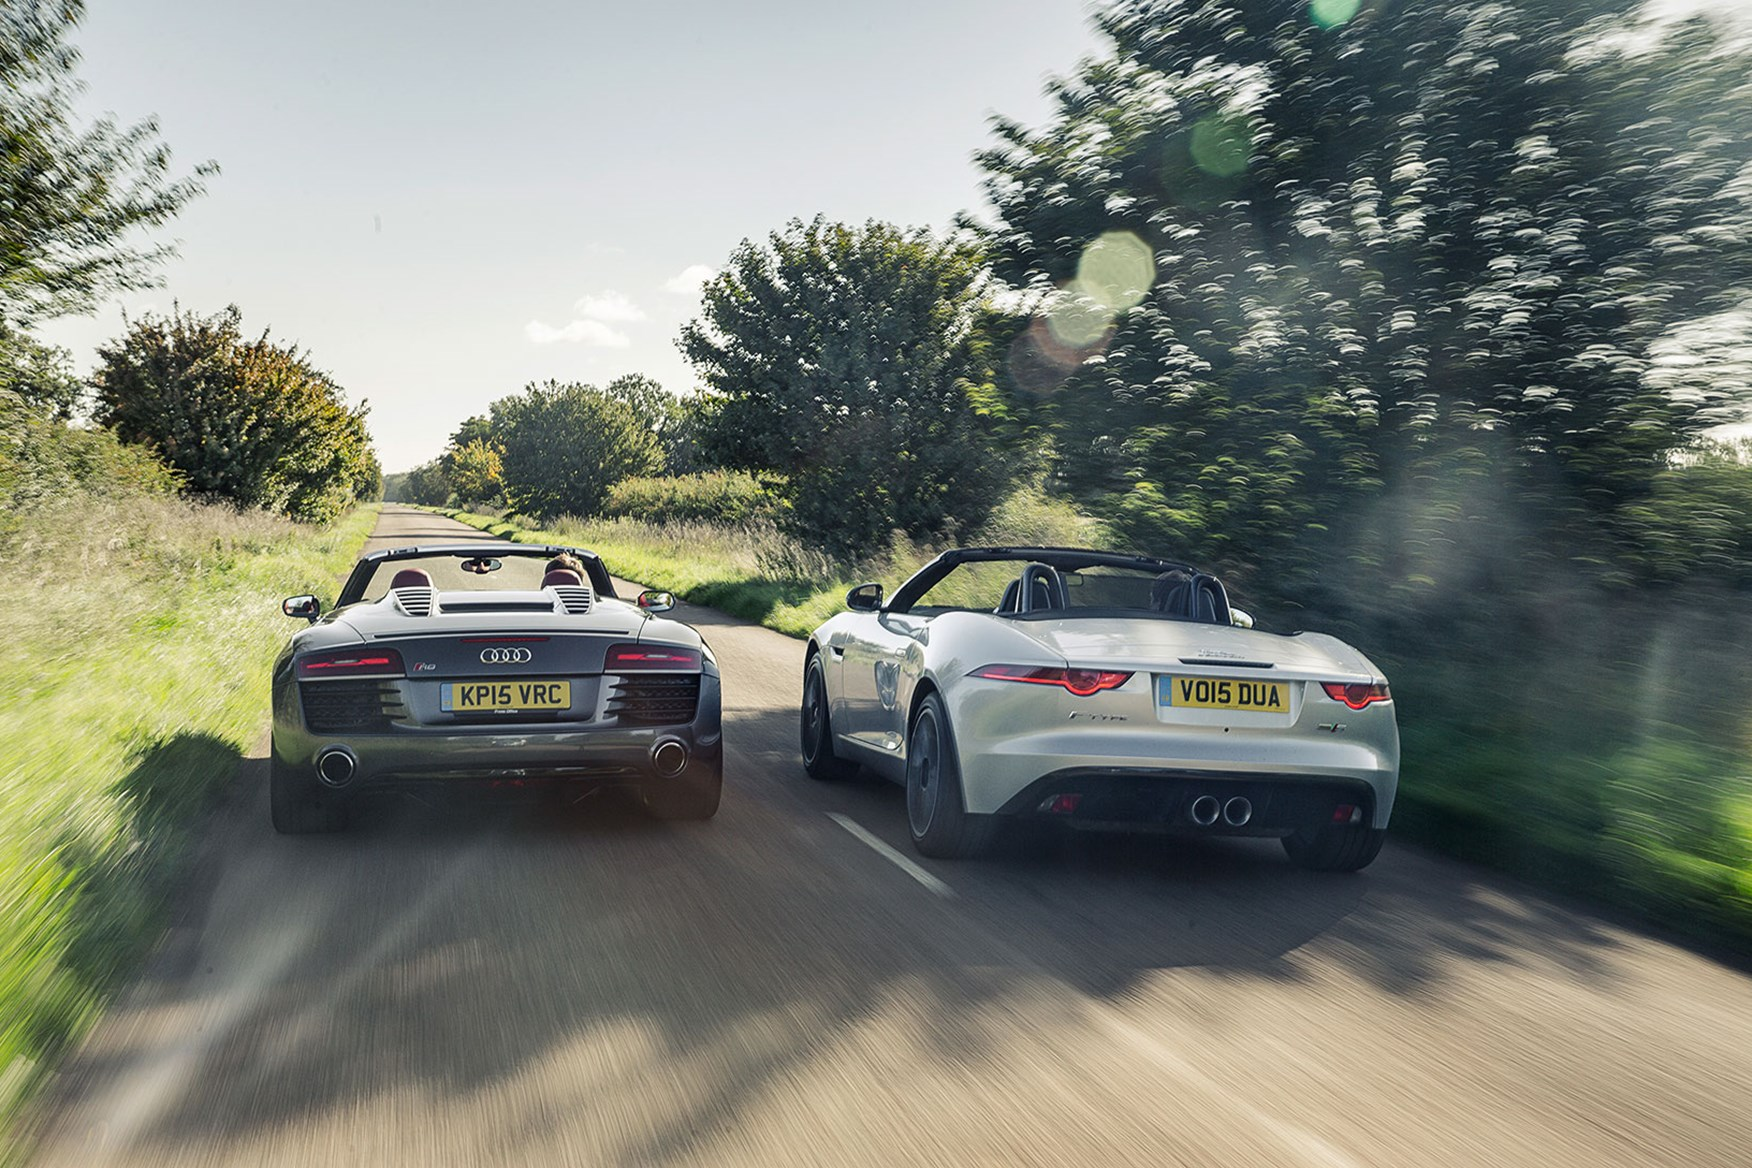 jag looks bigger on the road and is indeed longer and taller but r8 [ 1700 x 1088 Pixel ]